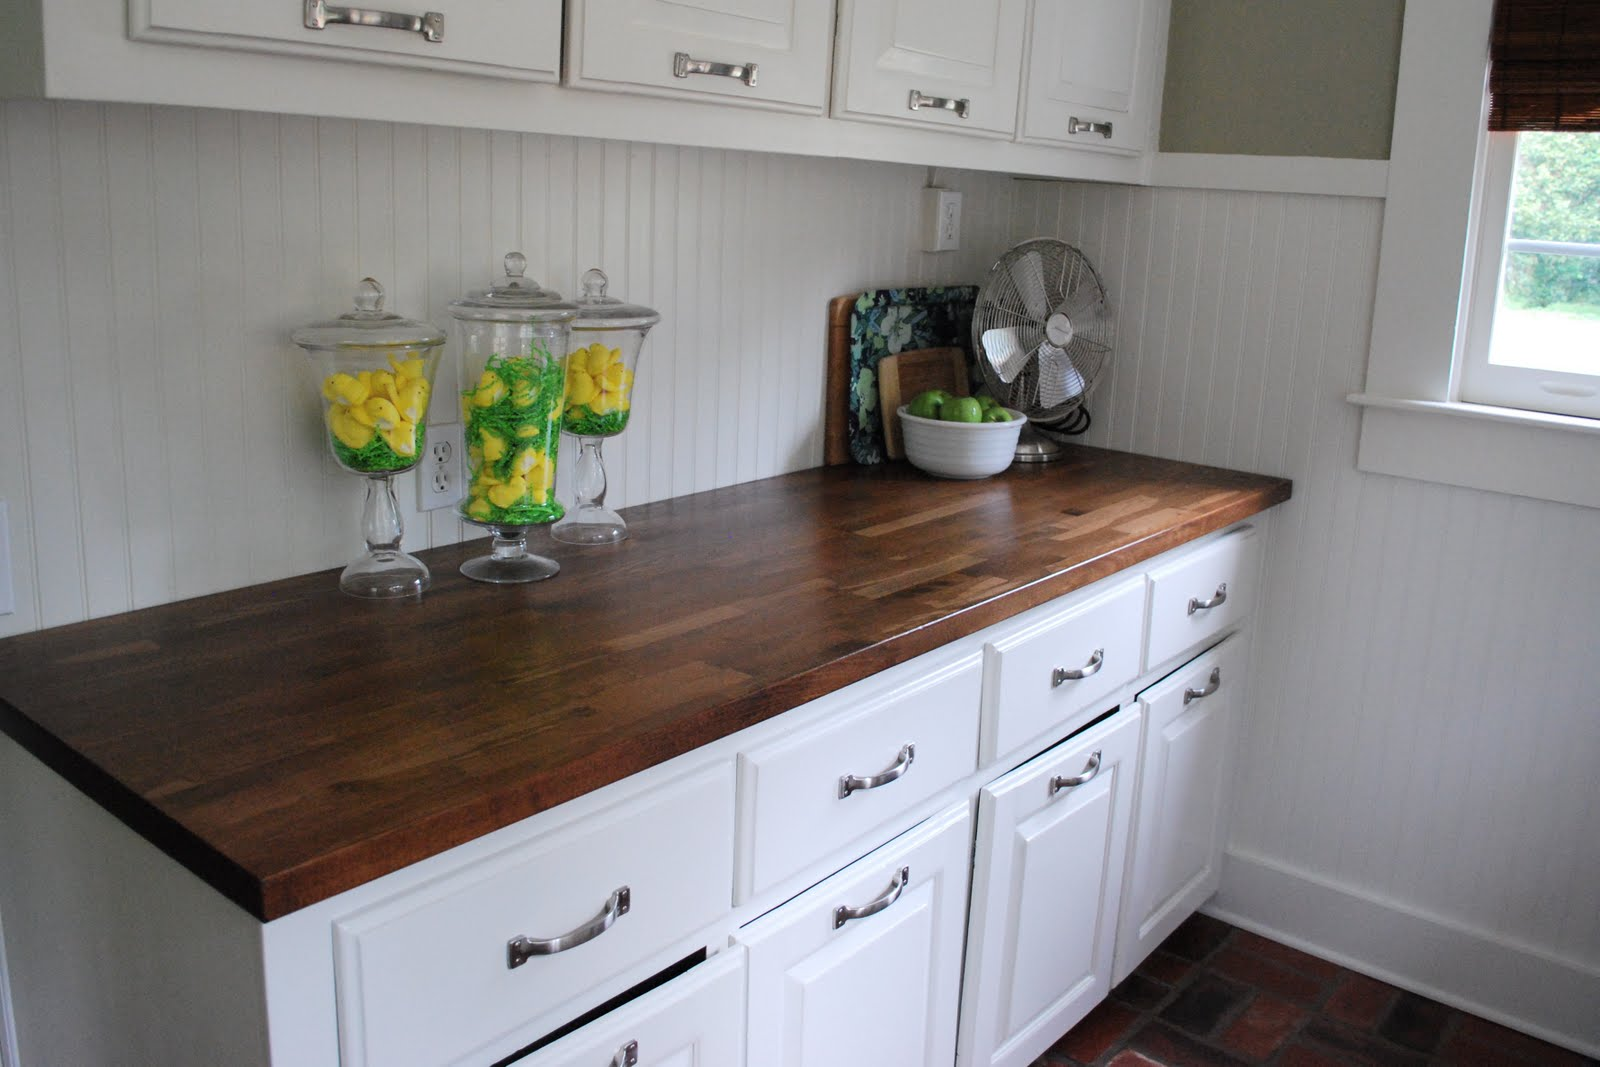 white-wooden-kitchen-cabinet-with-butcher-block-countertop-for-chic-kitchen-furniture-idea